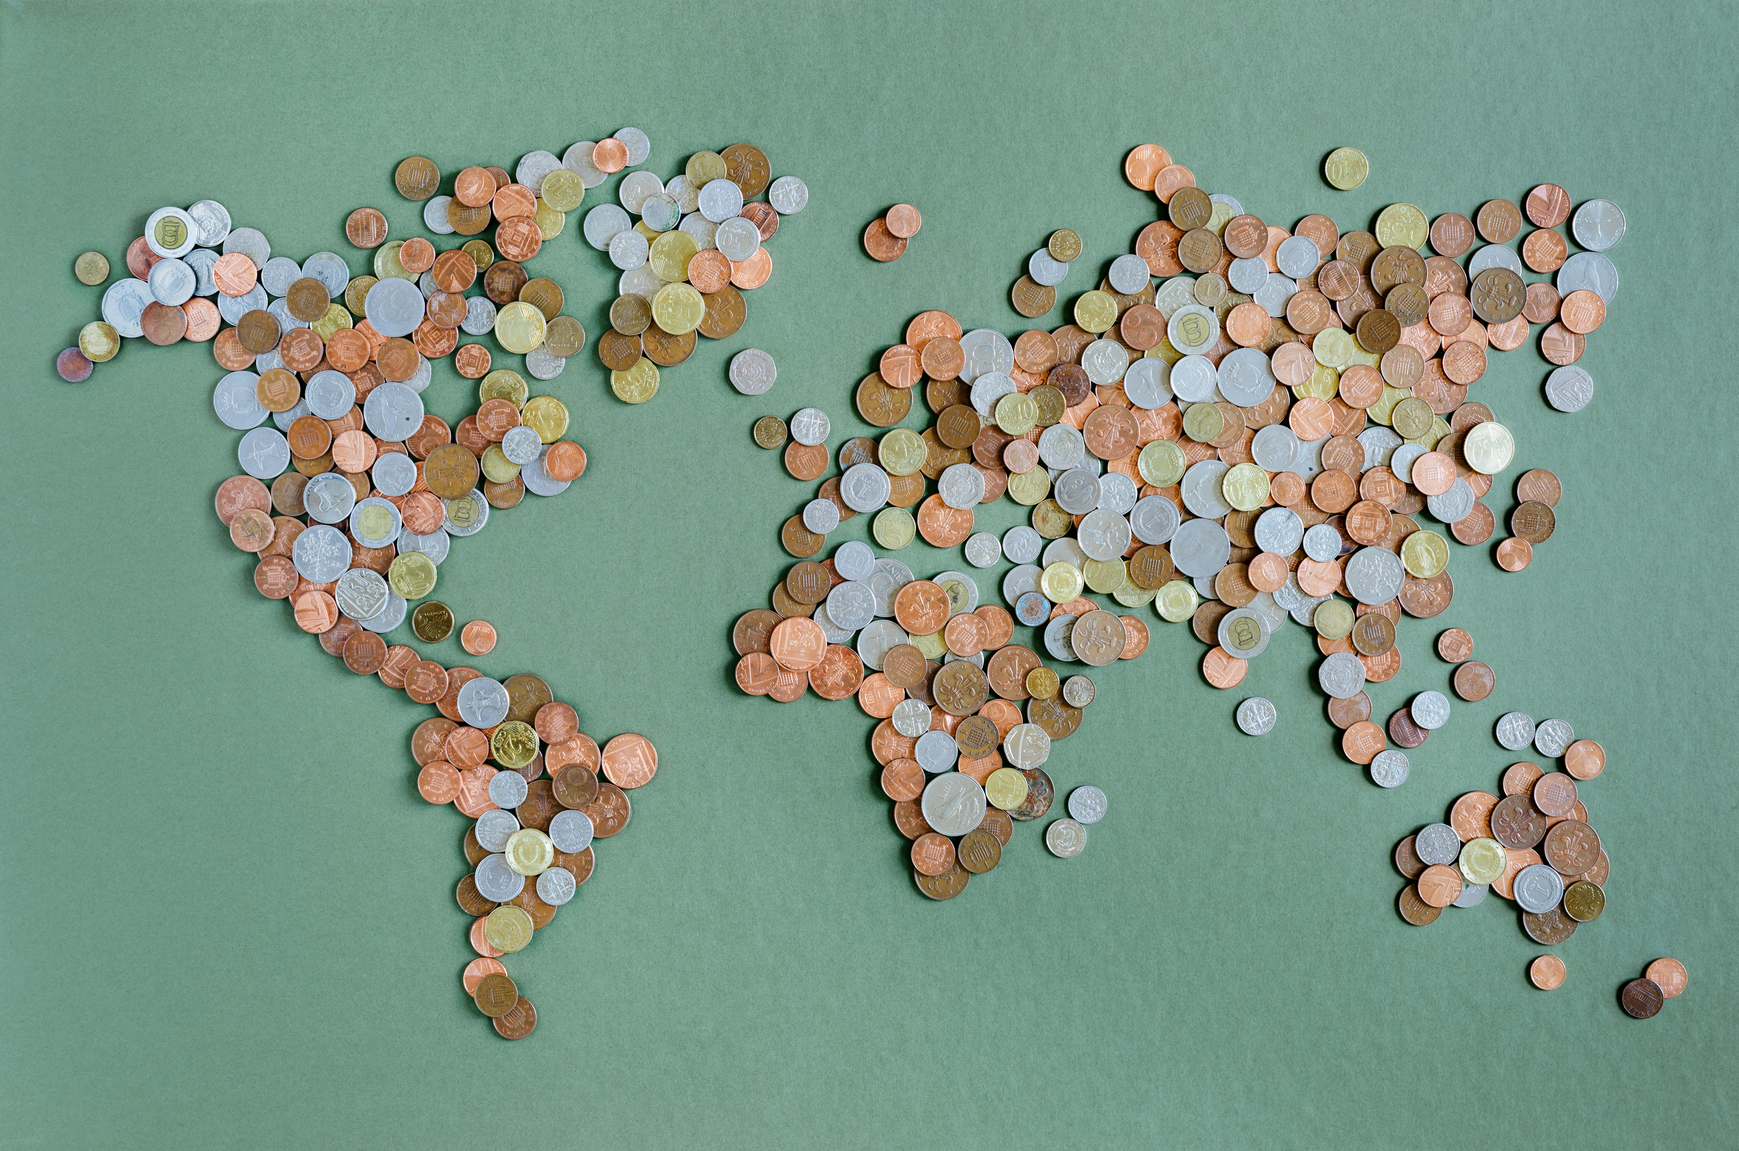 World Map In Coin Collection